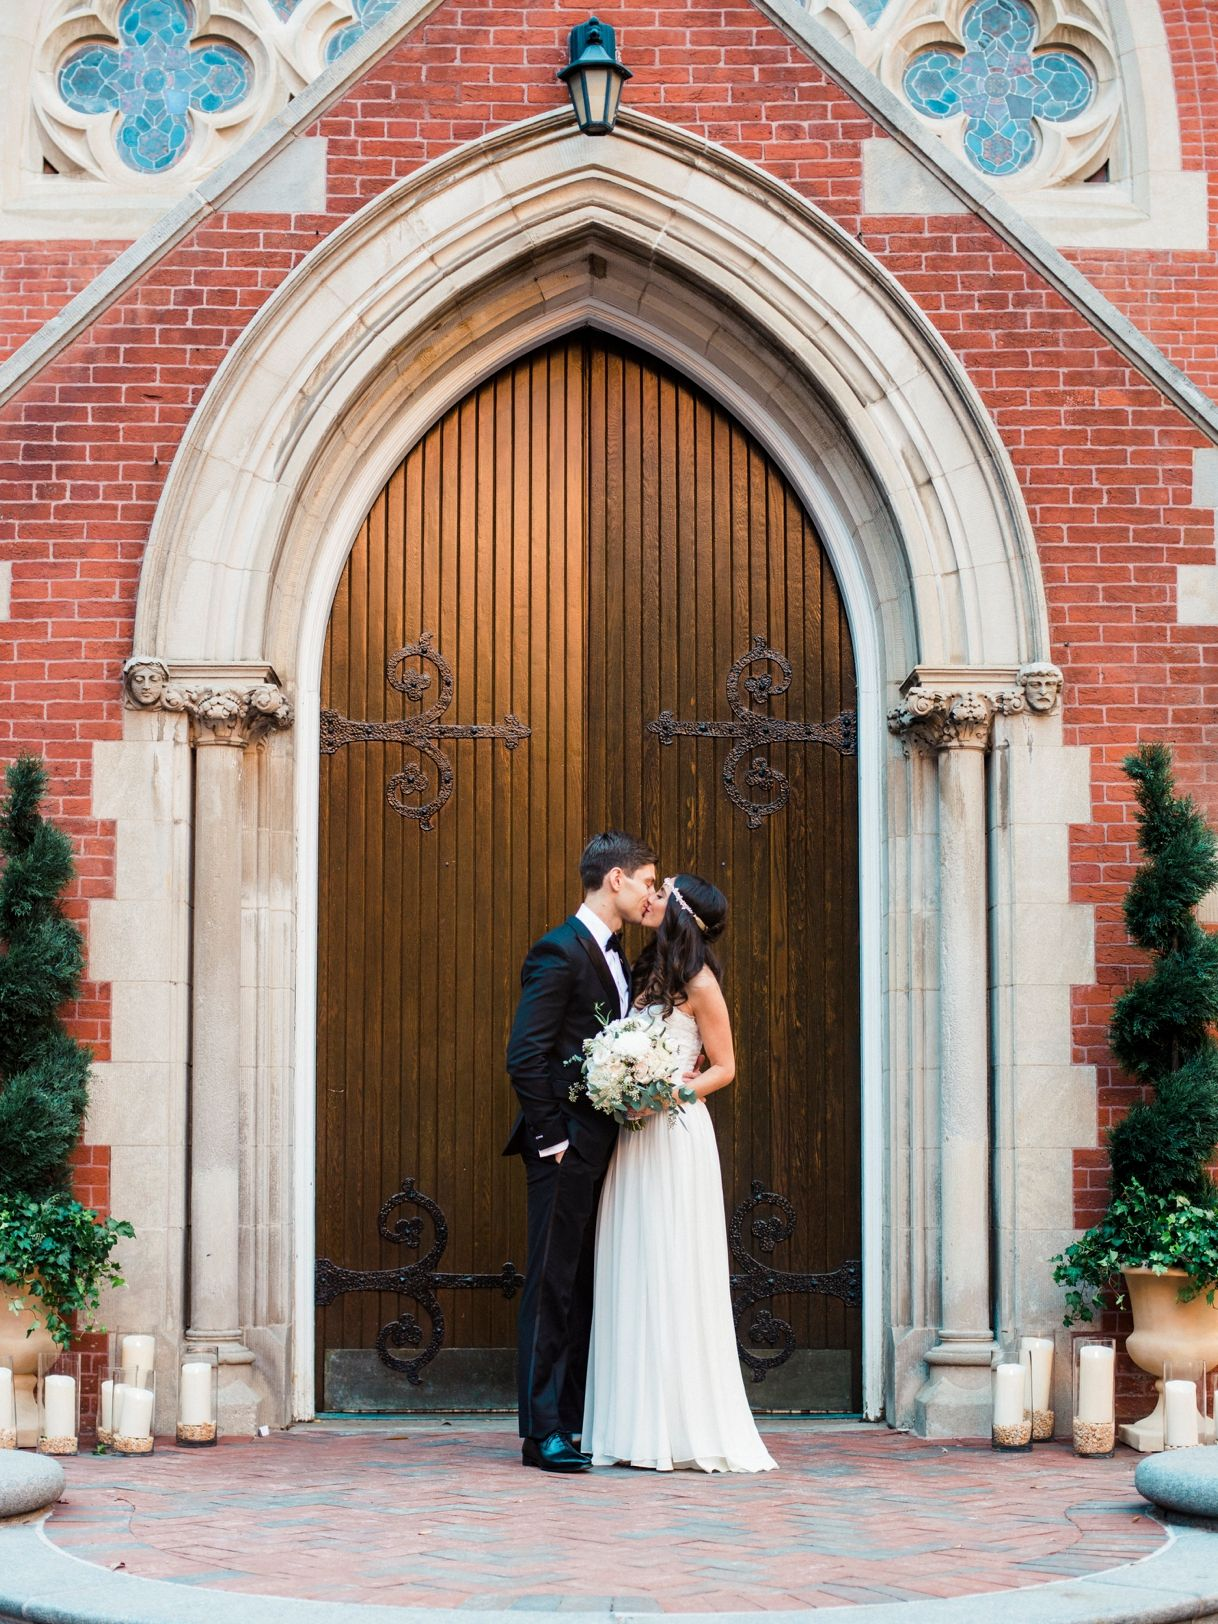 Alexa And James Wedding At The Georgetown University Chapel Woodend In Washington DC By